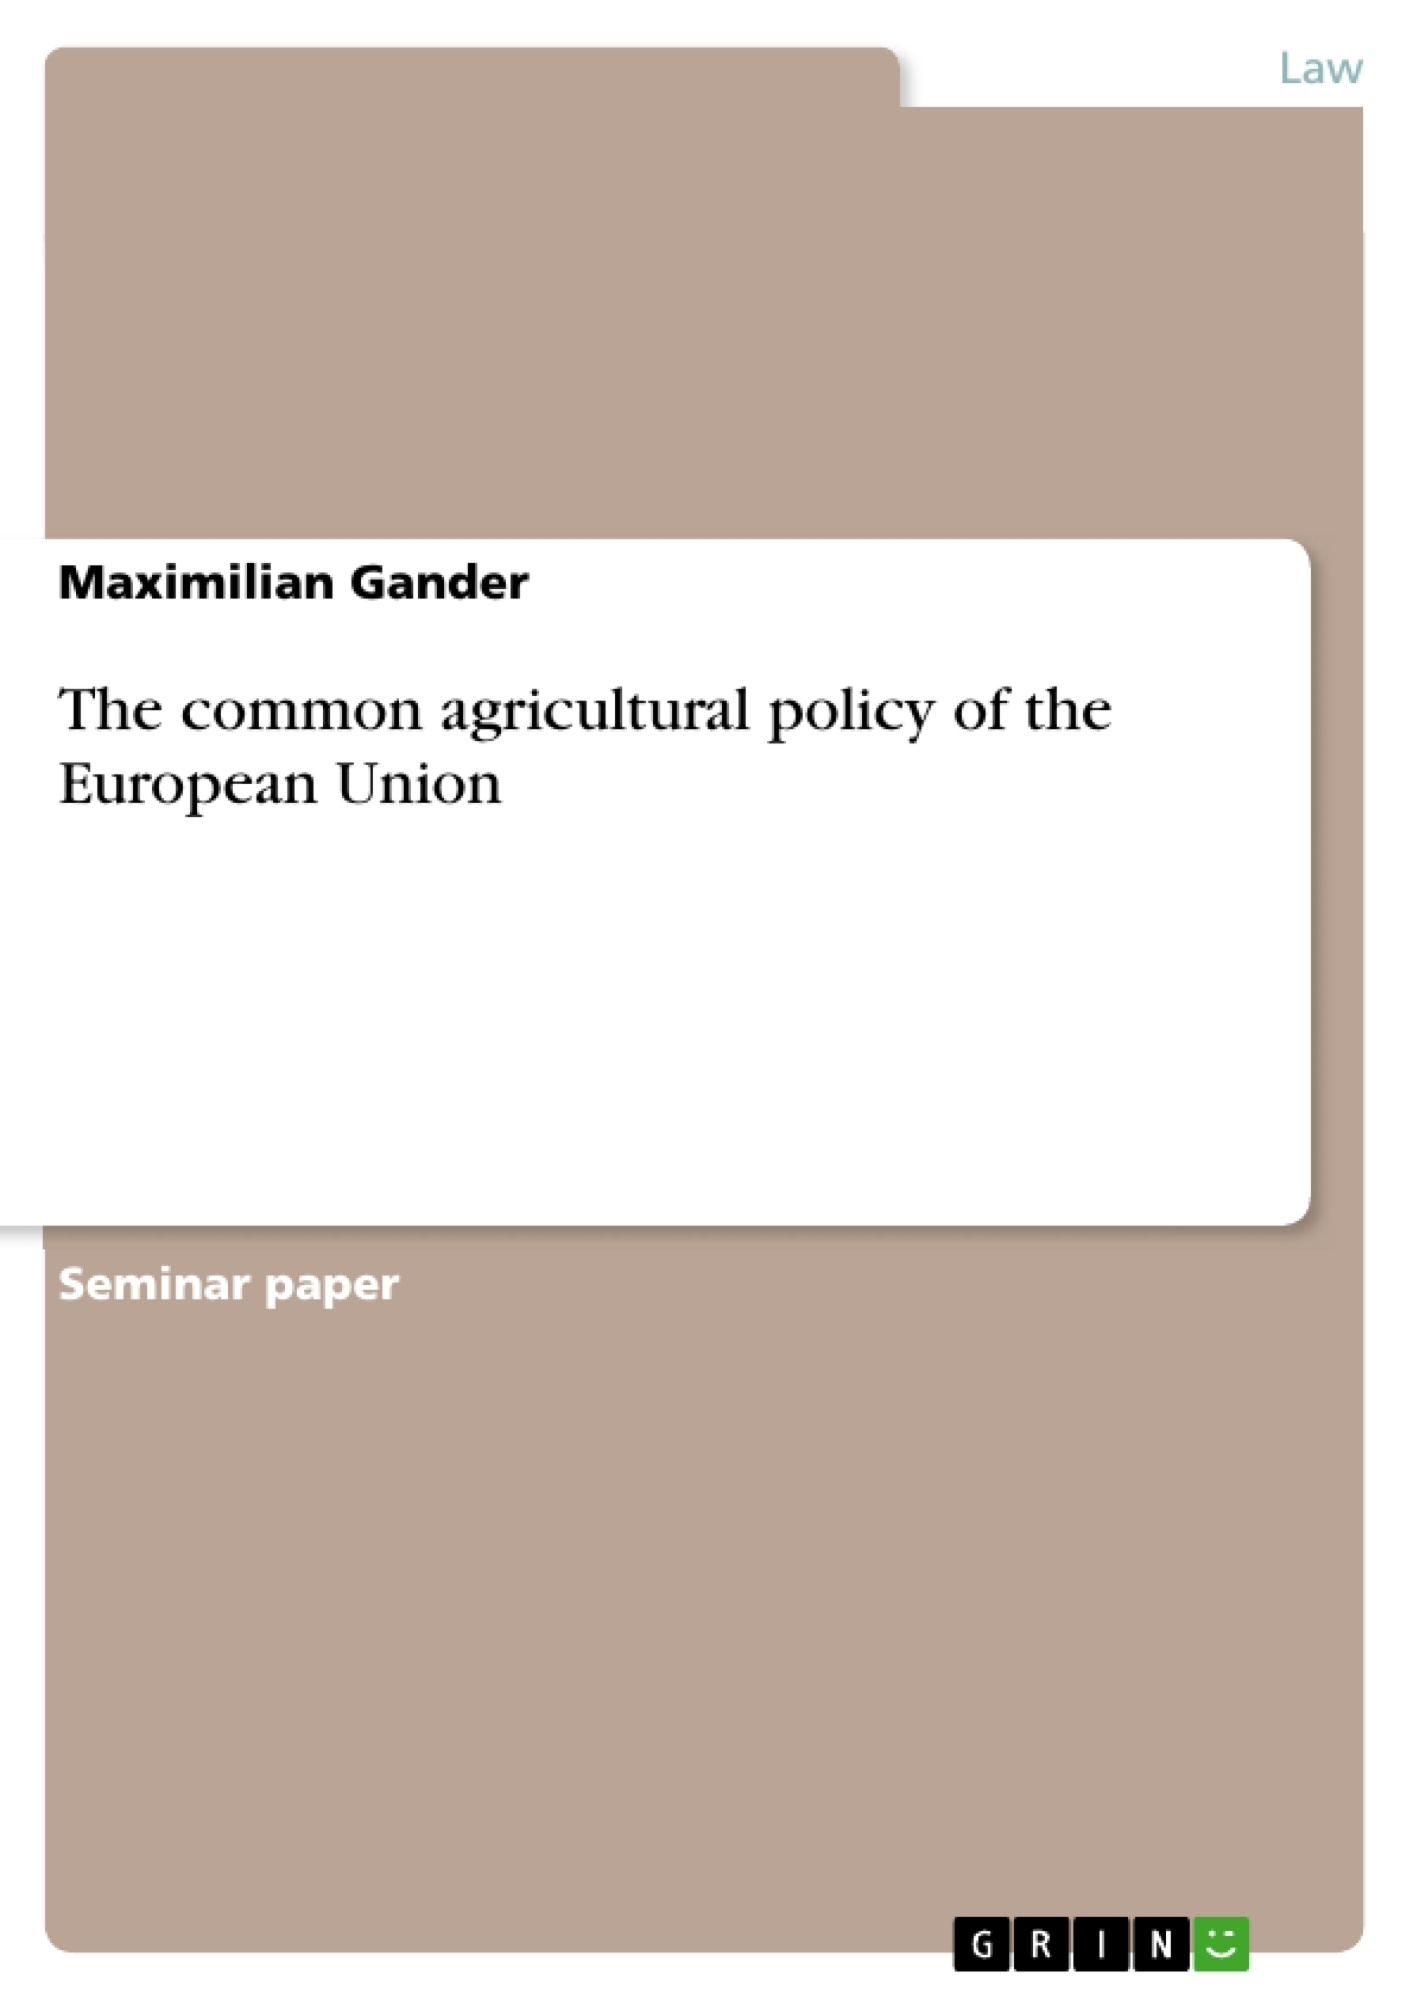 Title: The common agricultural policy of the European Union